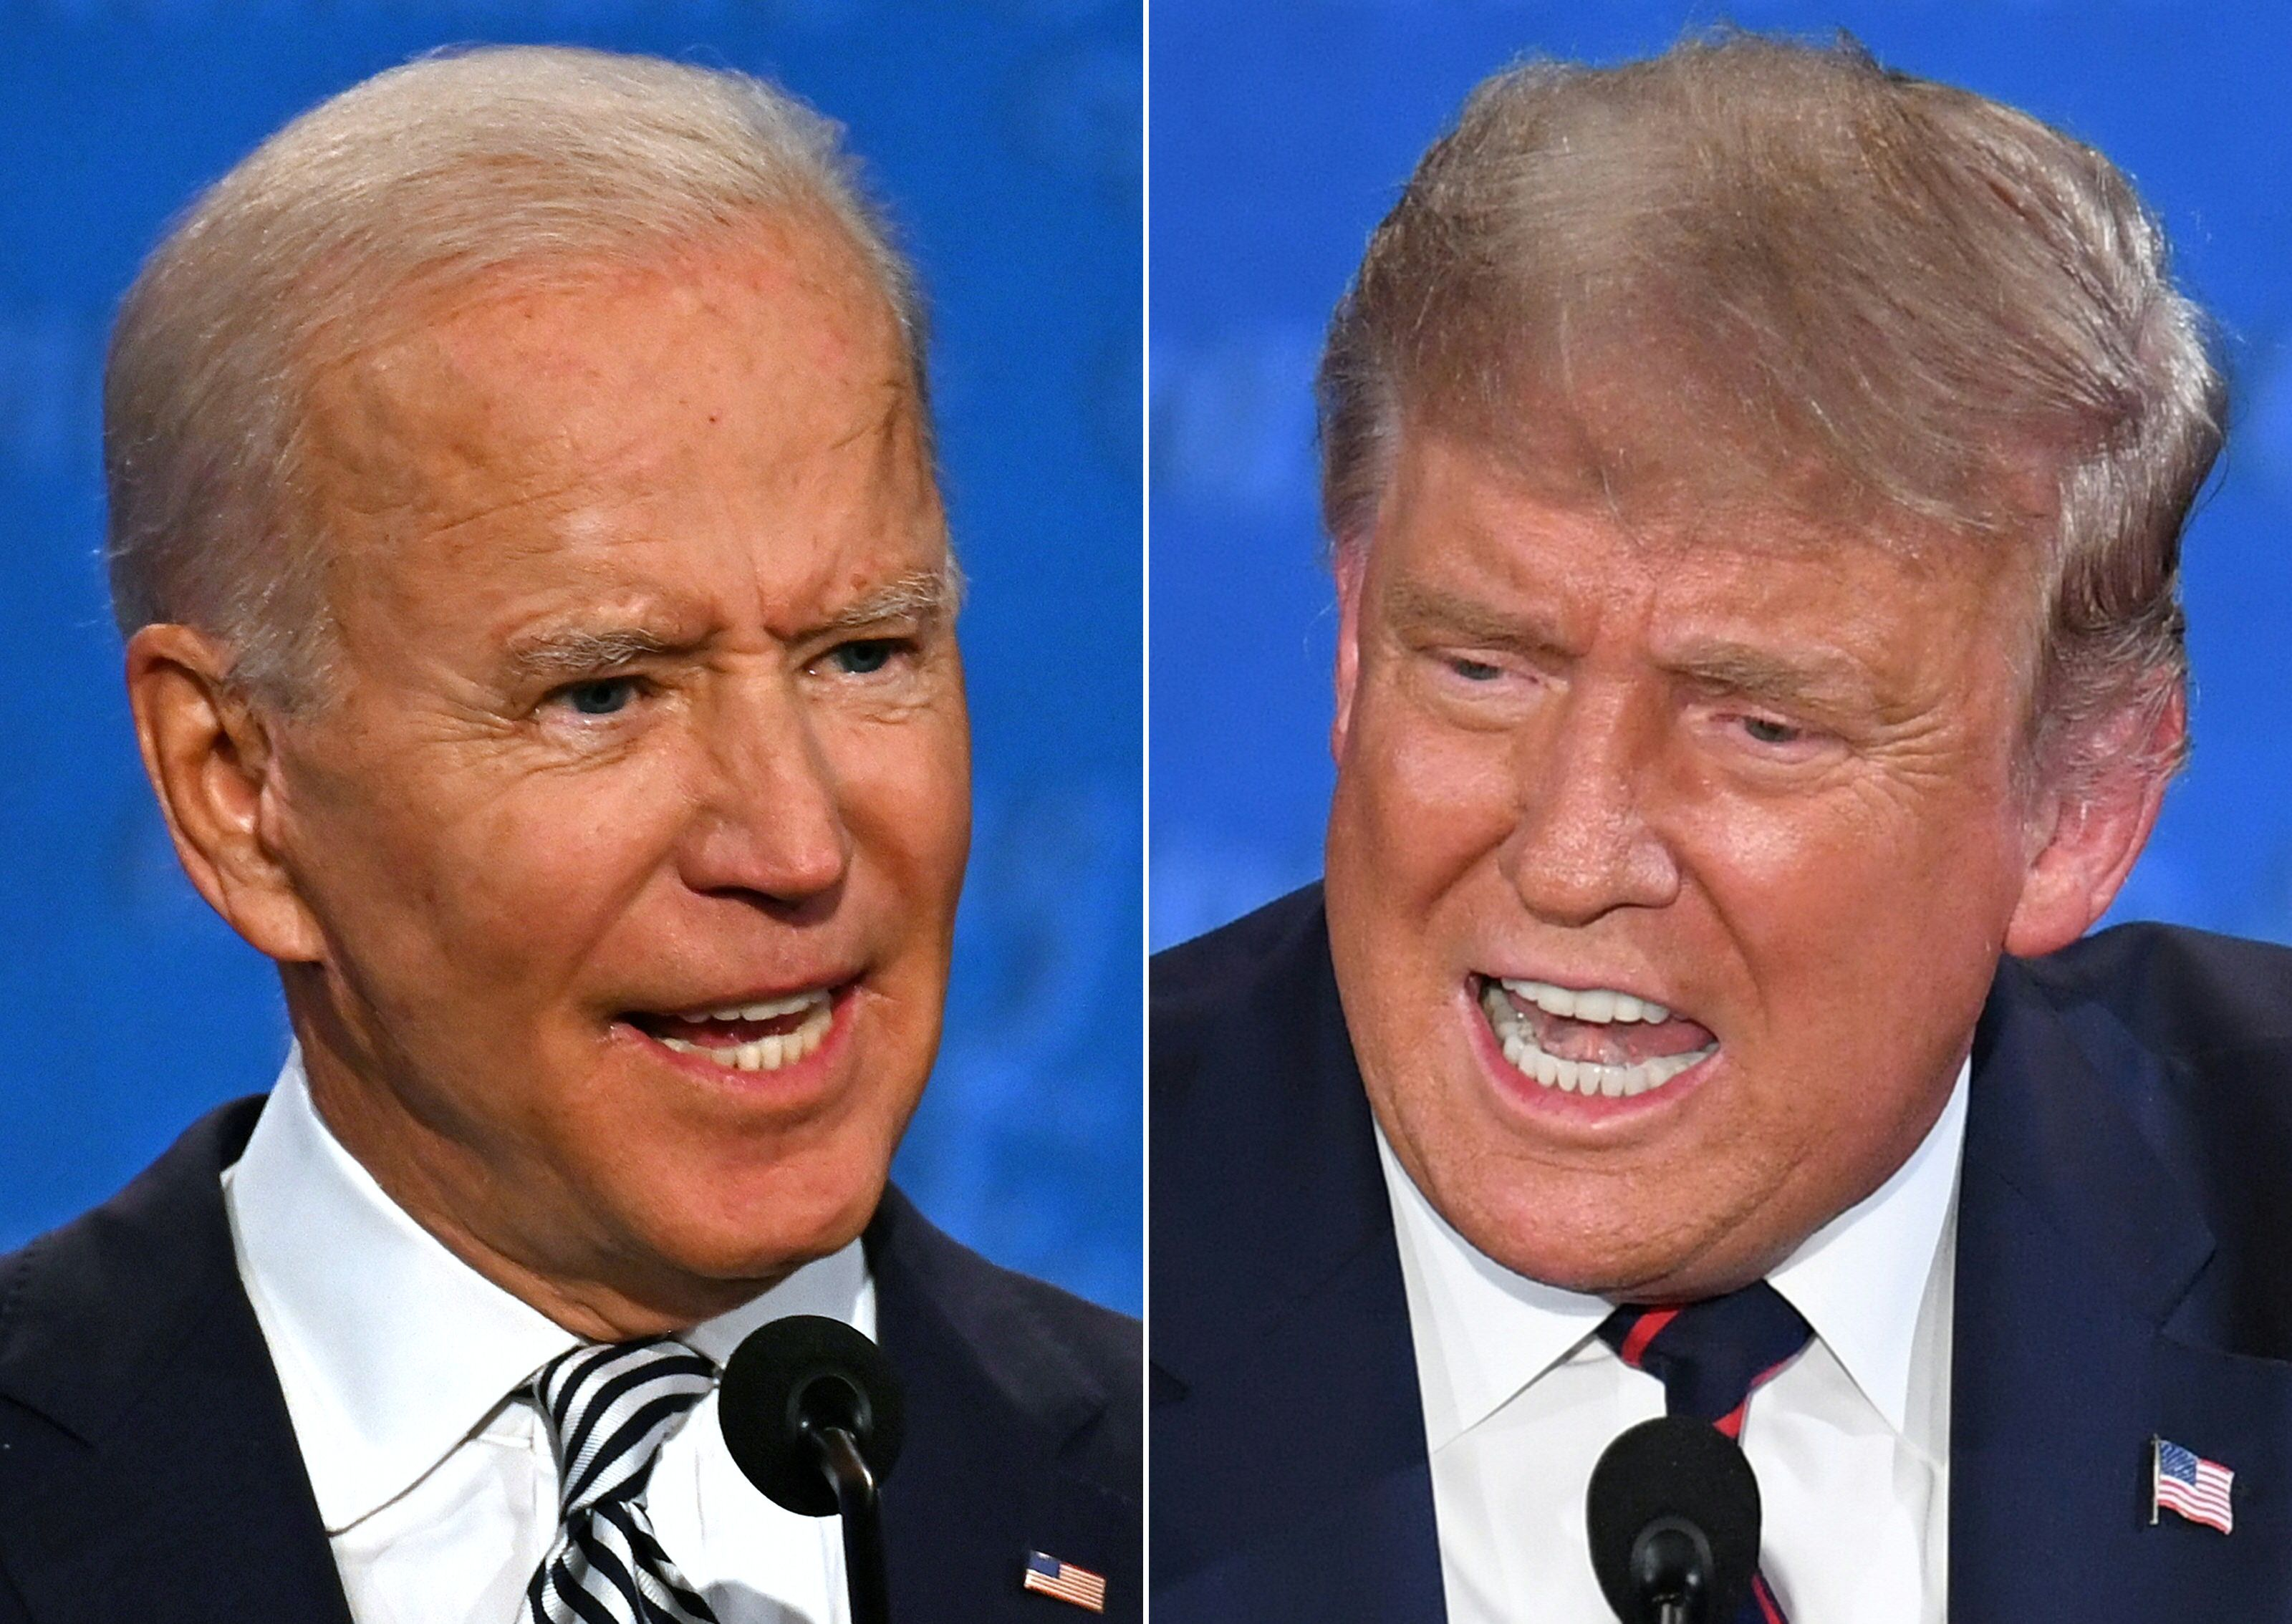 Combination of pictures created on September 29, 2020 shows Democratic Presidential candidate and former US Vice President Joe Biden (L) and US President Donald Trump speaking during the first presidential debate at the Case Western Reserve University and Cleveland Clinic in Cleveland, Ohio on September 29, 2020.